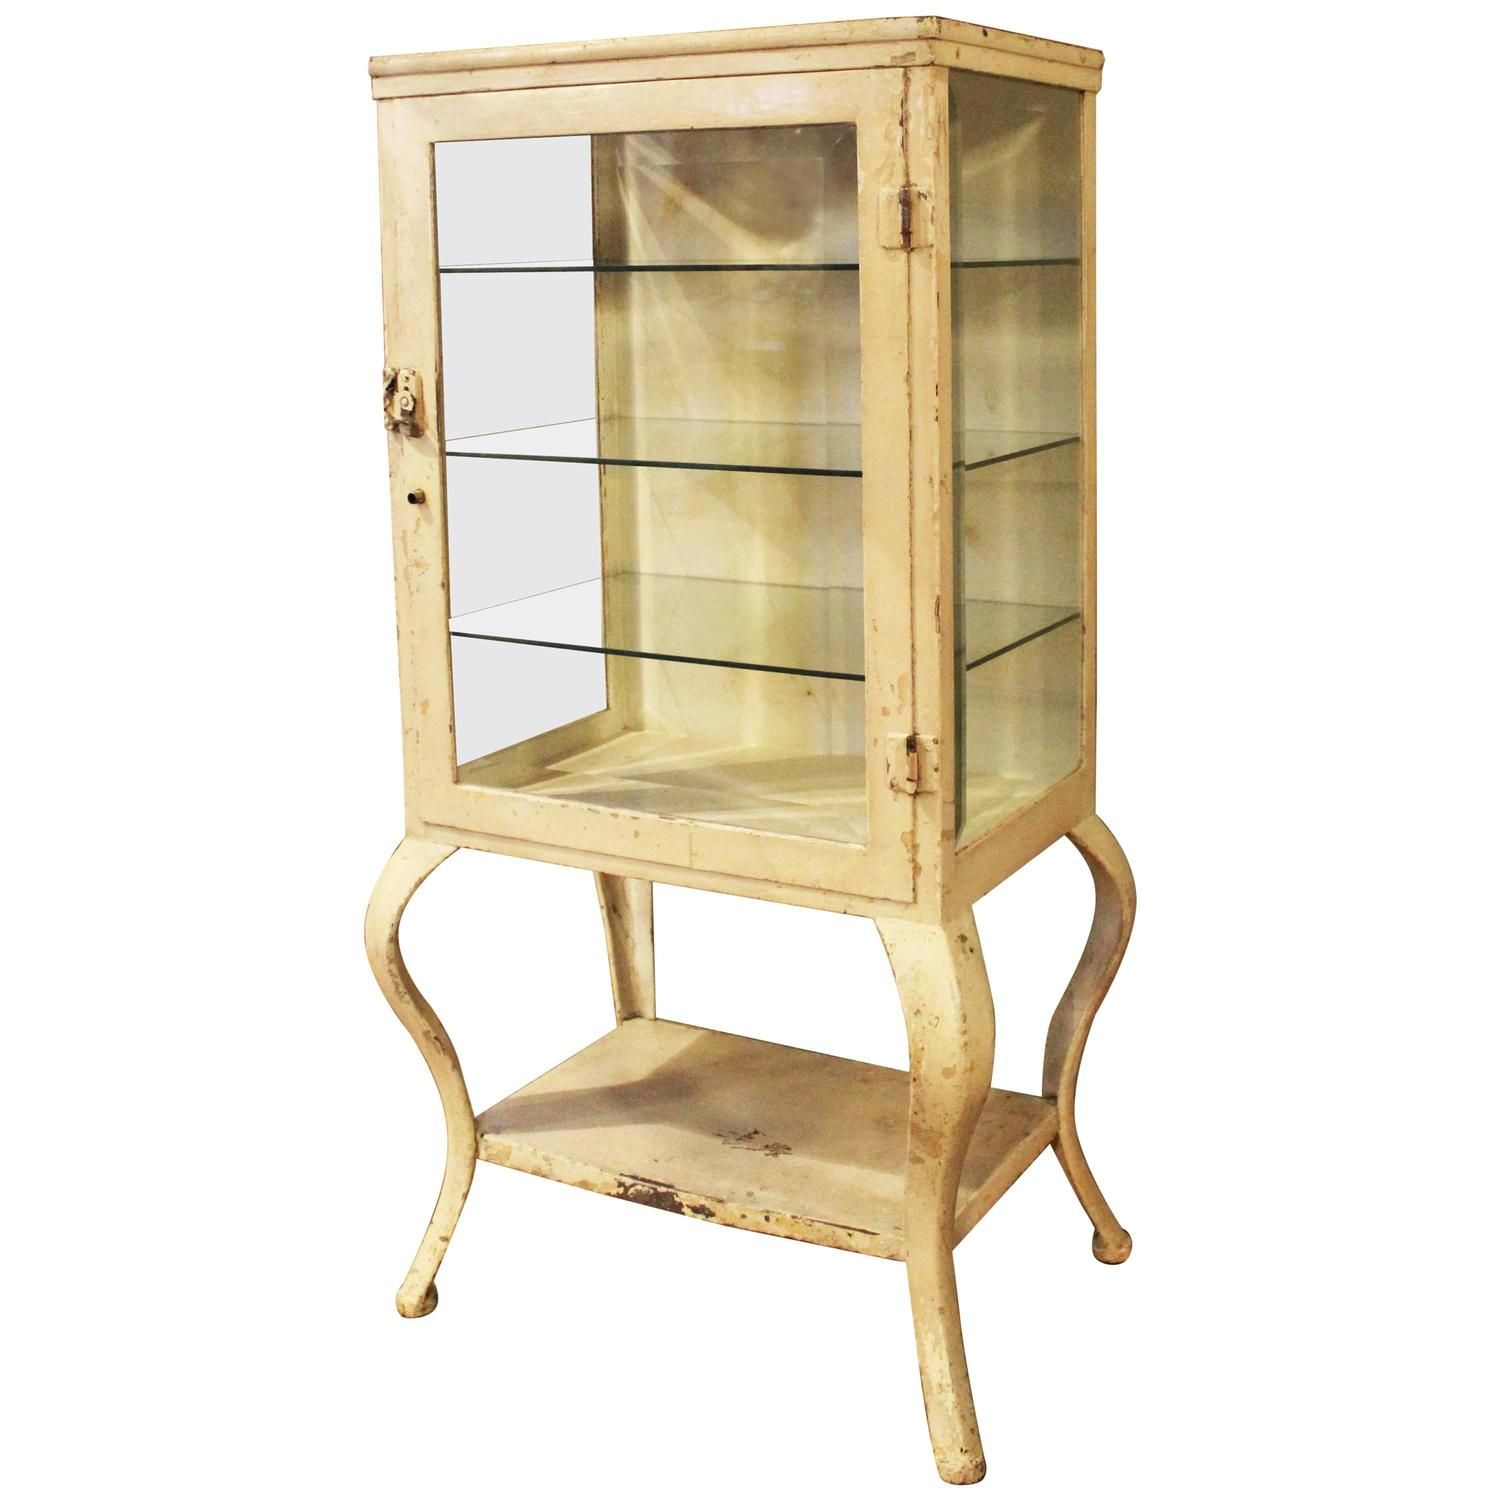 Vintage Industrial antique steel, metal and glass medical, pharmacy storage  cabinet with three glass - Vintage Industrial Antique Steel, Metal And Glass Medical, Pharmacy